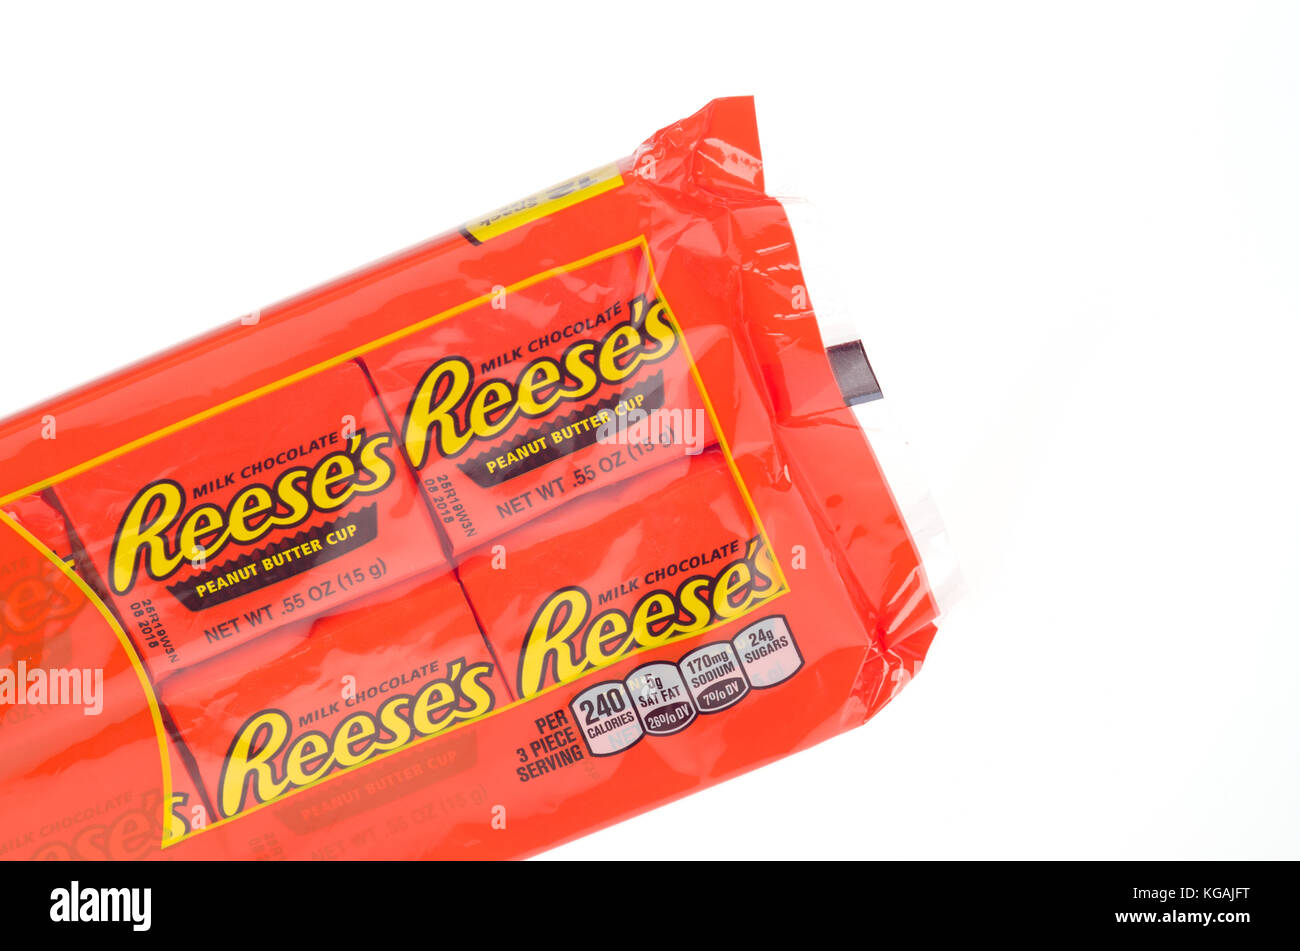 Reese's Chocolate covered Peanut Butter Cups candy package from Hershey's - Stock Image